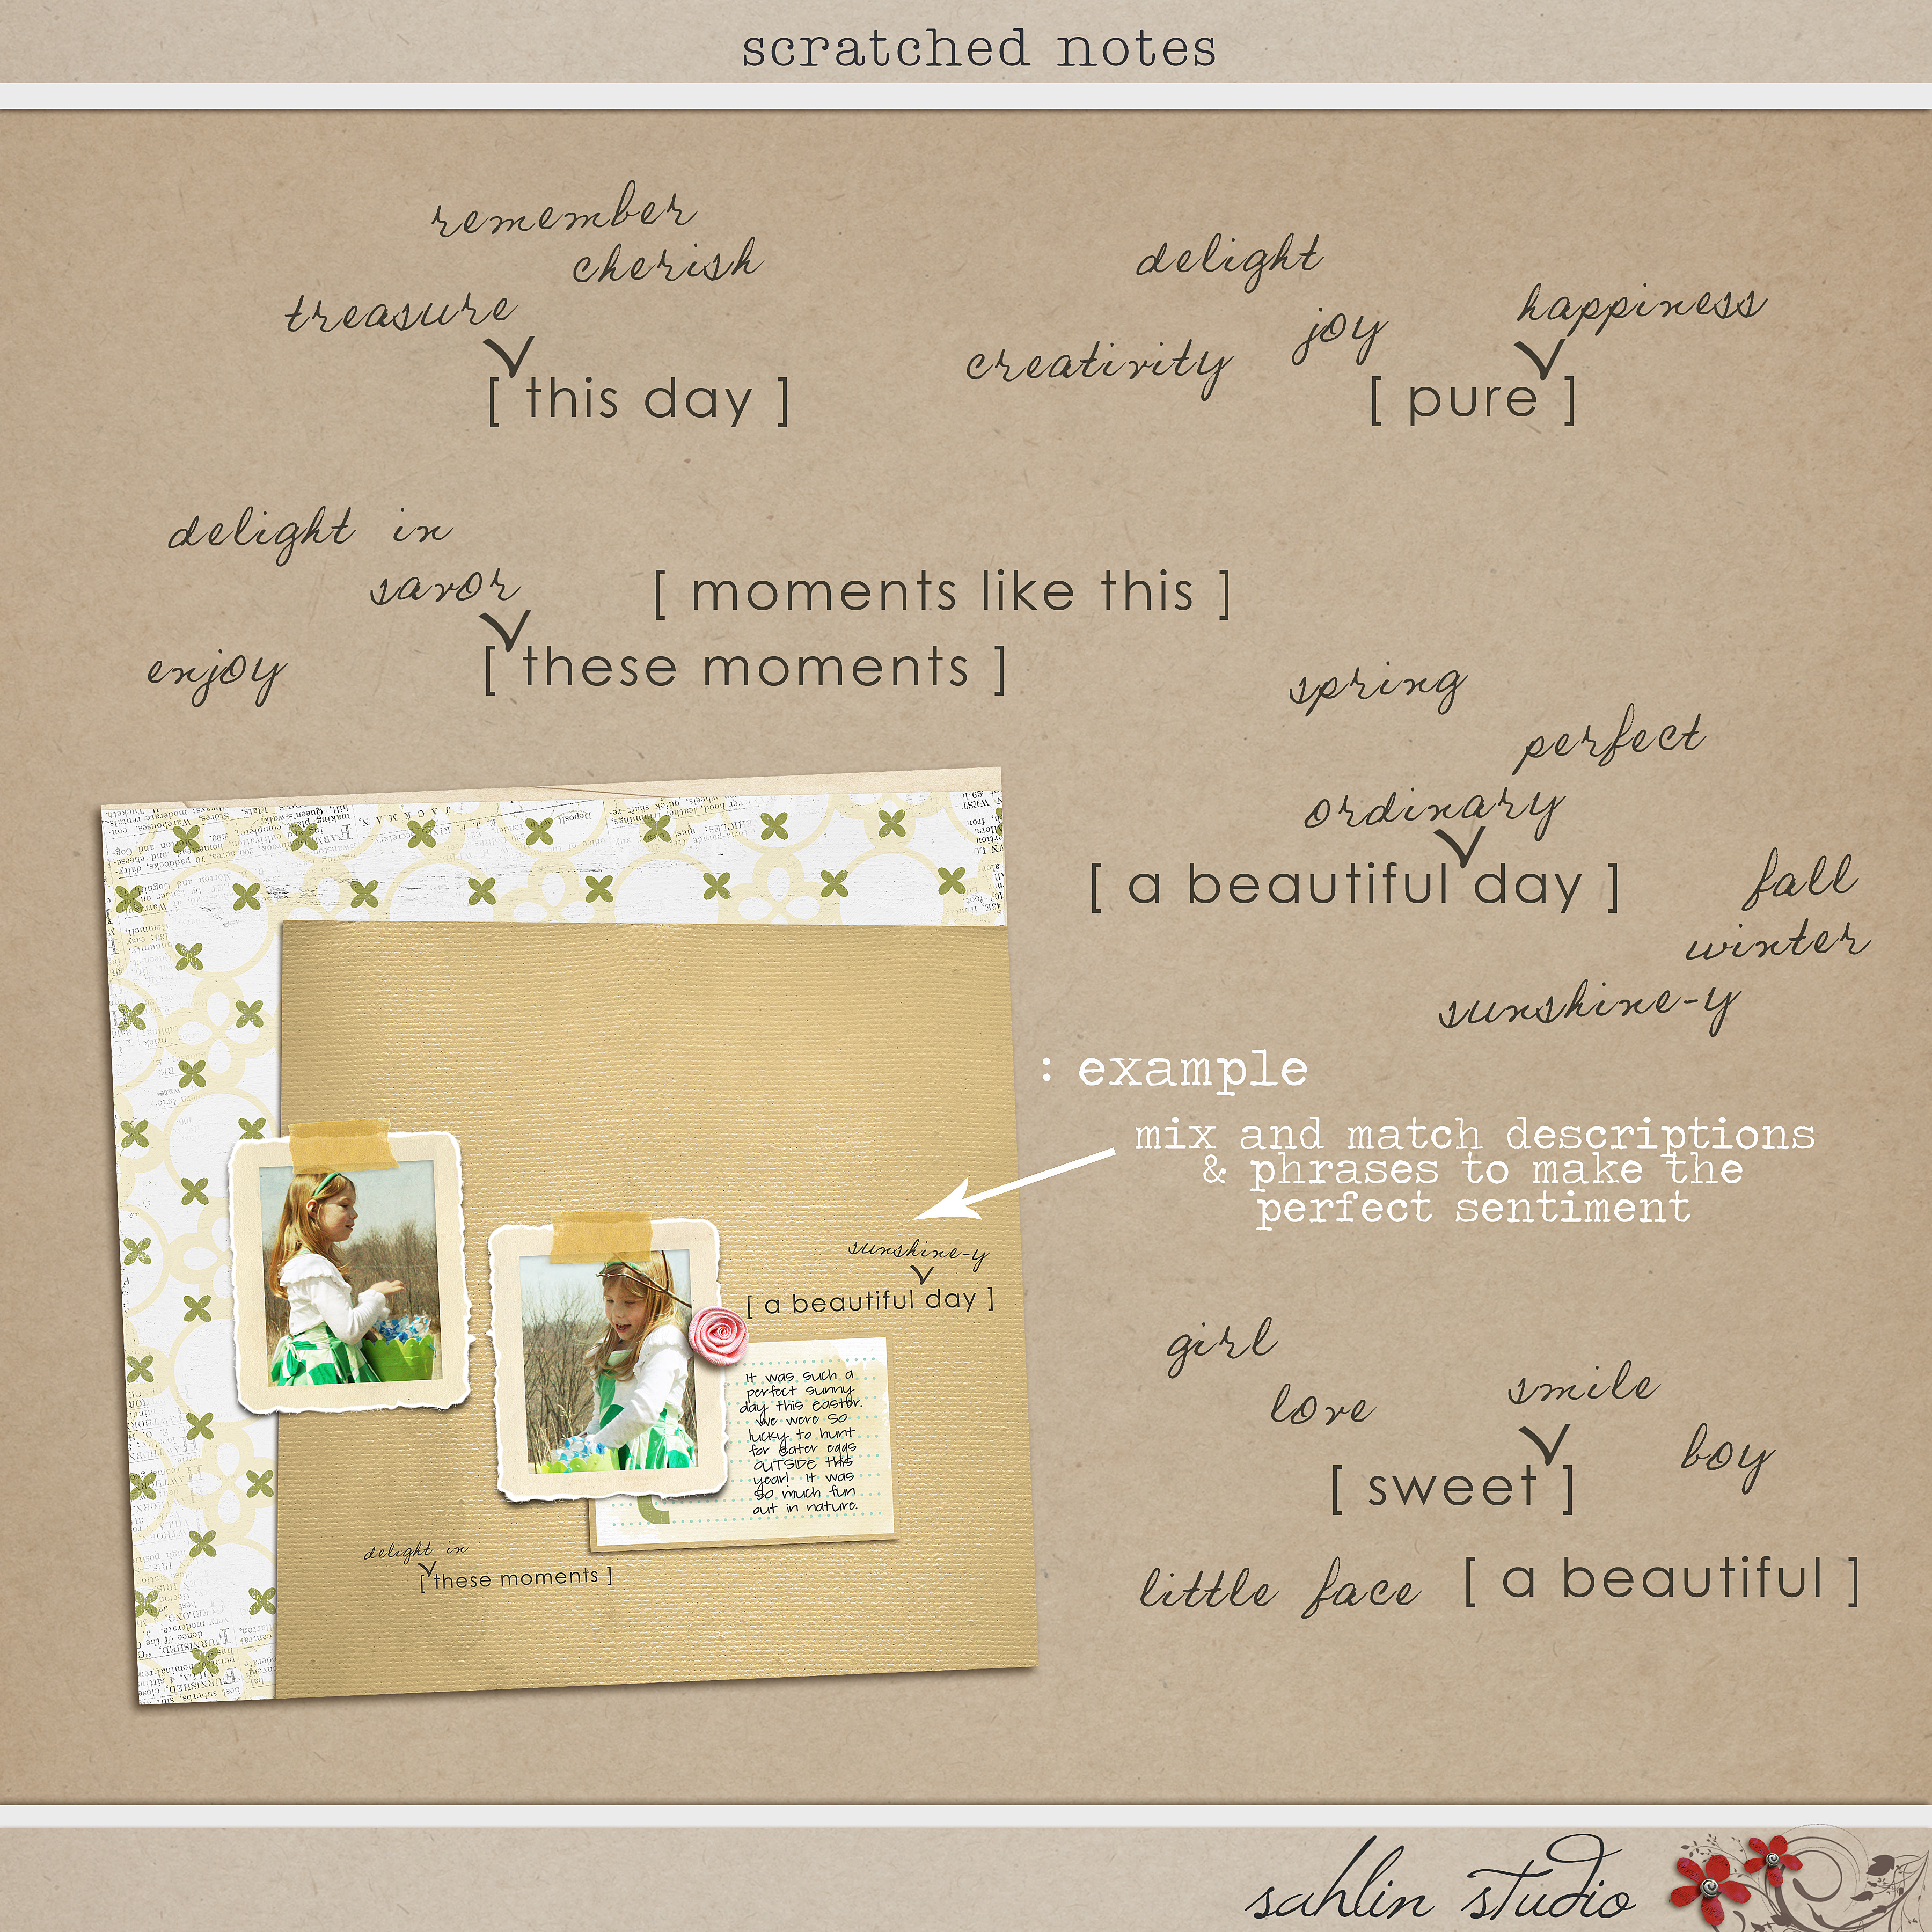 Scratched Notes Sahlin Studio Digital Scrapbooking Designs